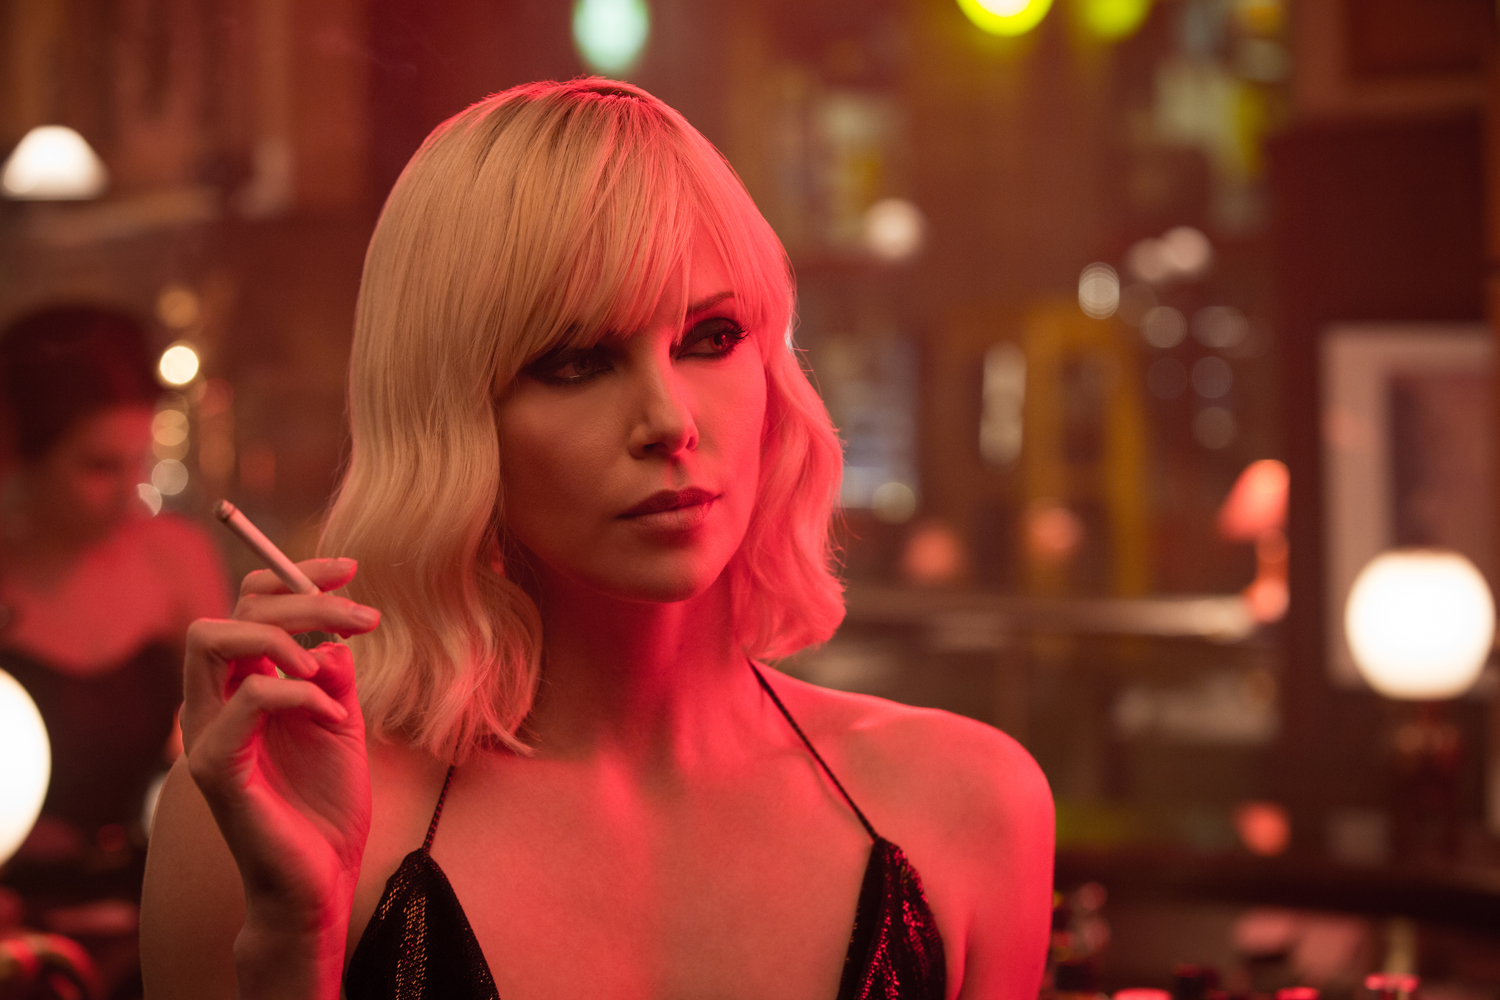 Charlize Theron smoking a cigarette in ATOMIC BLONDE